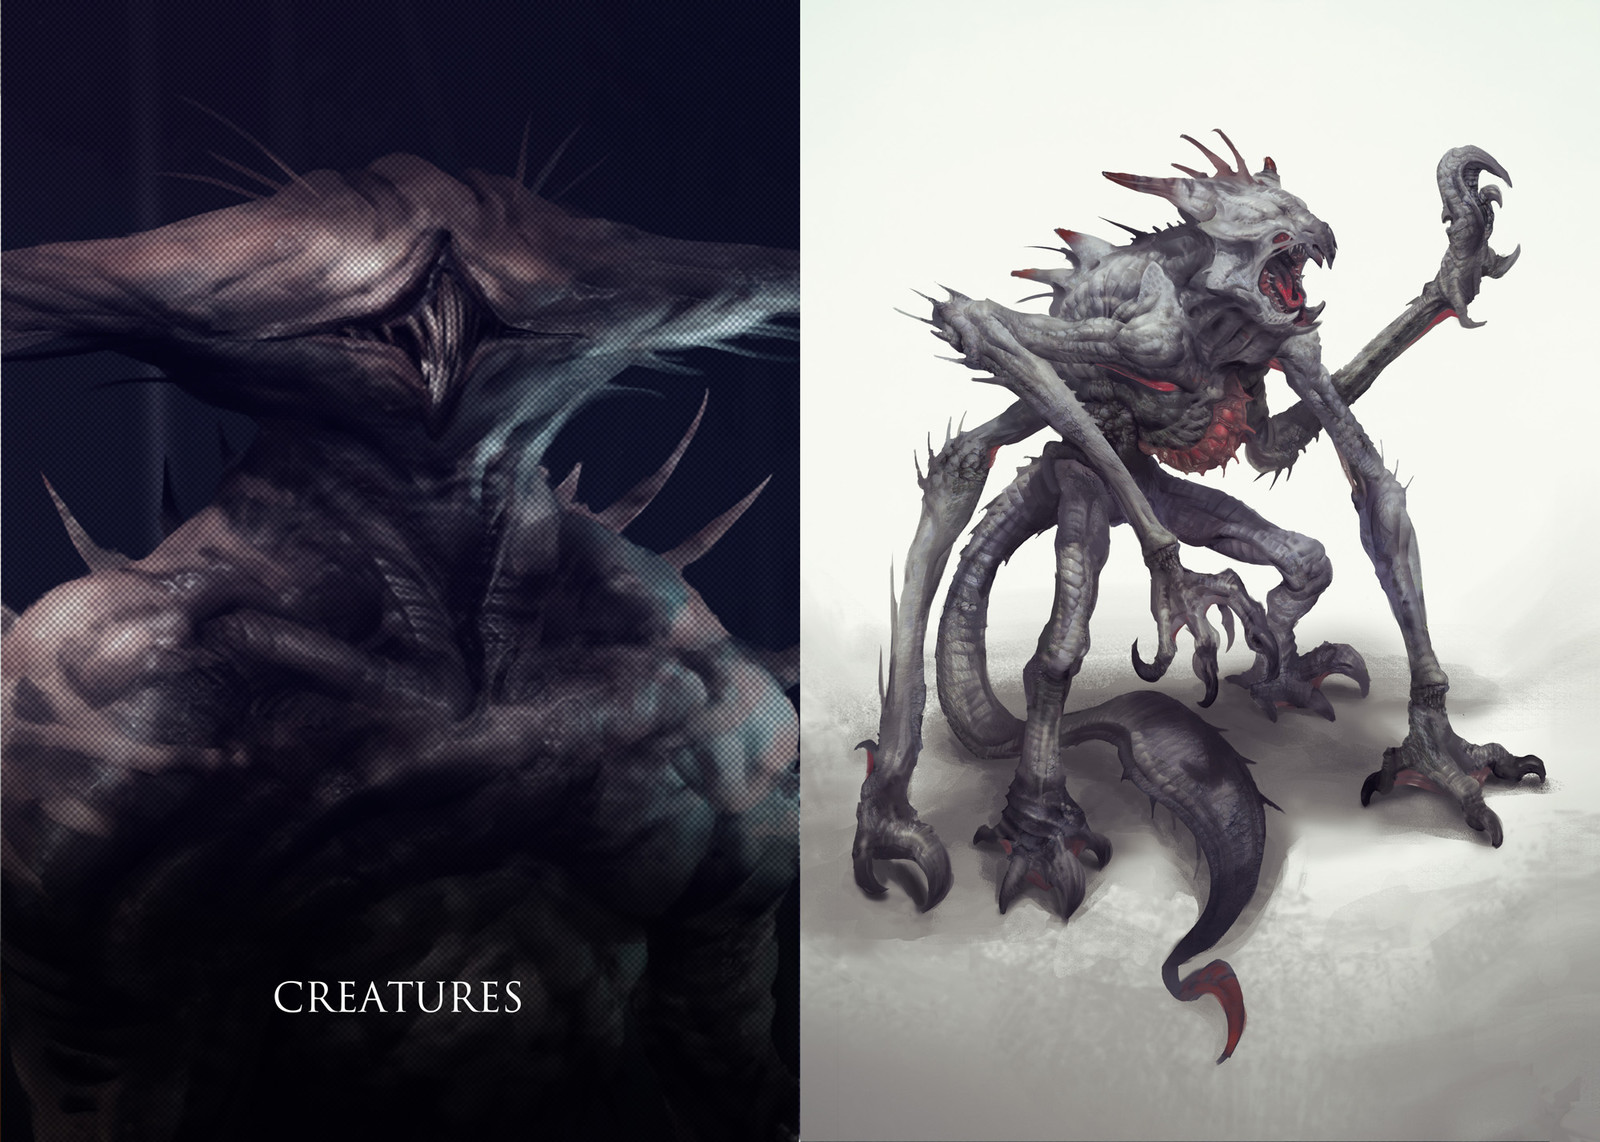 Creature mutations - Project Yggdrasil